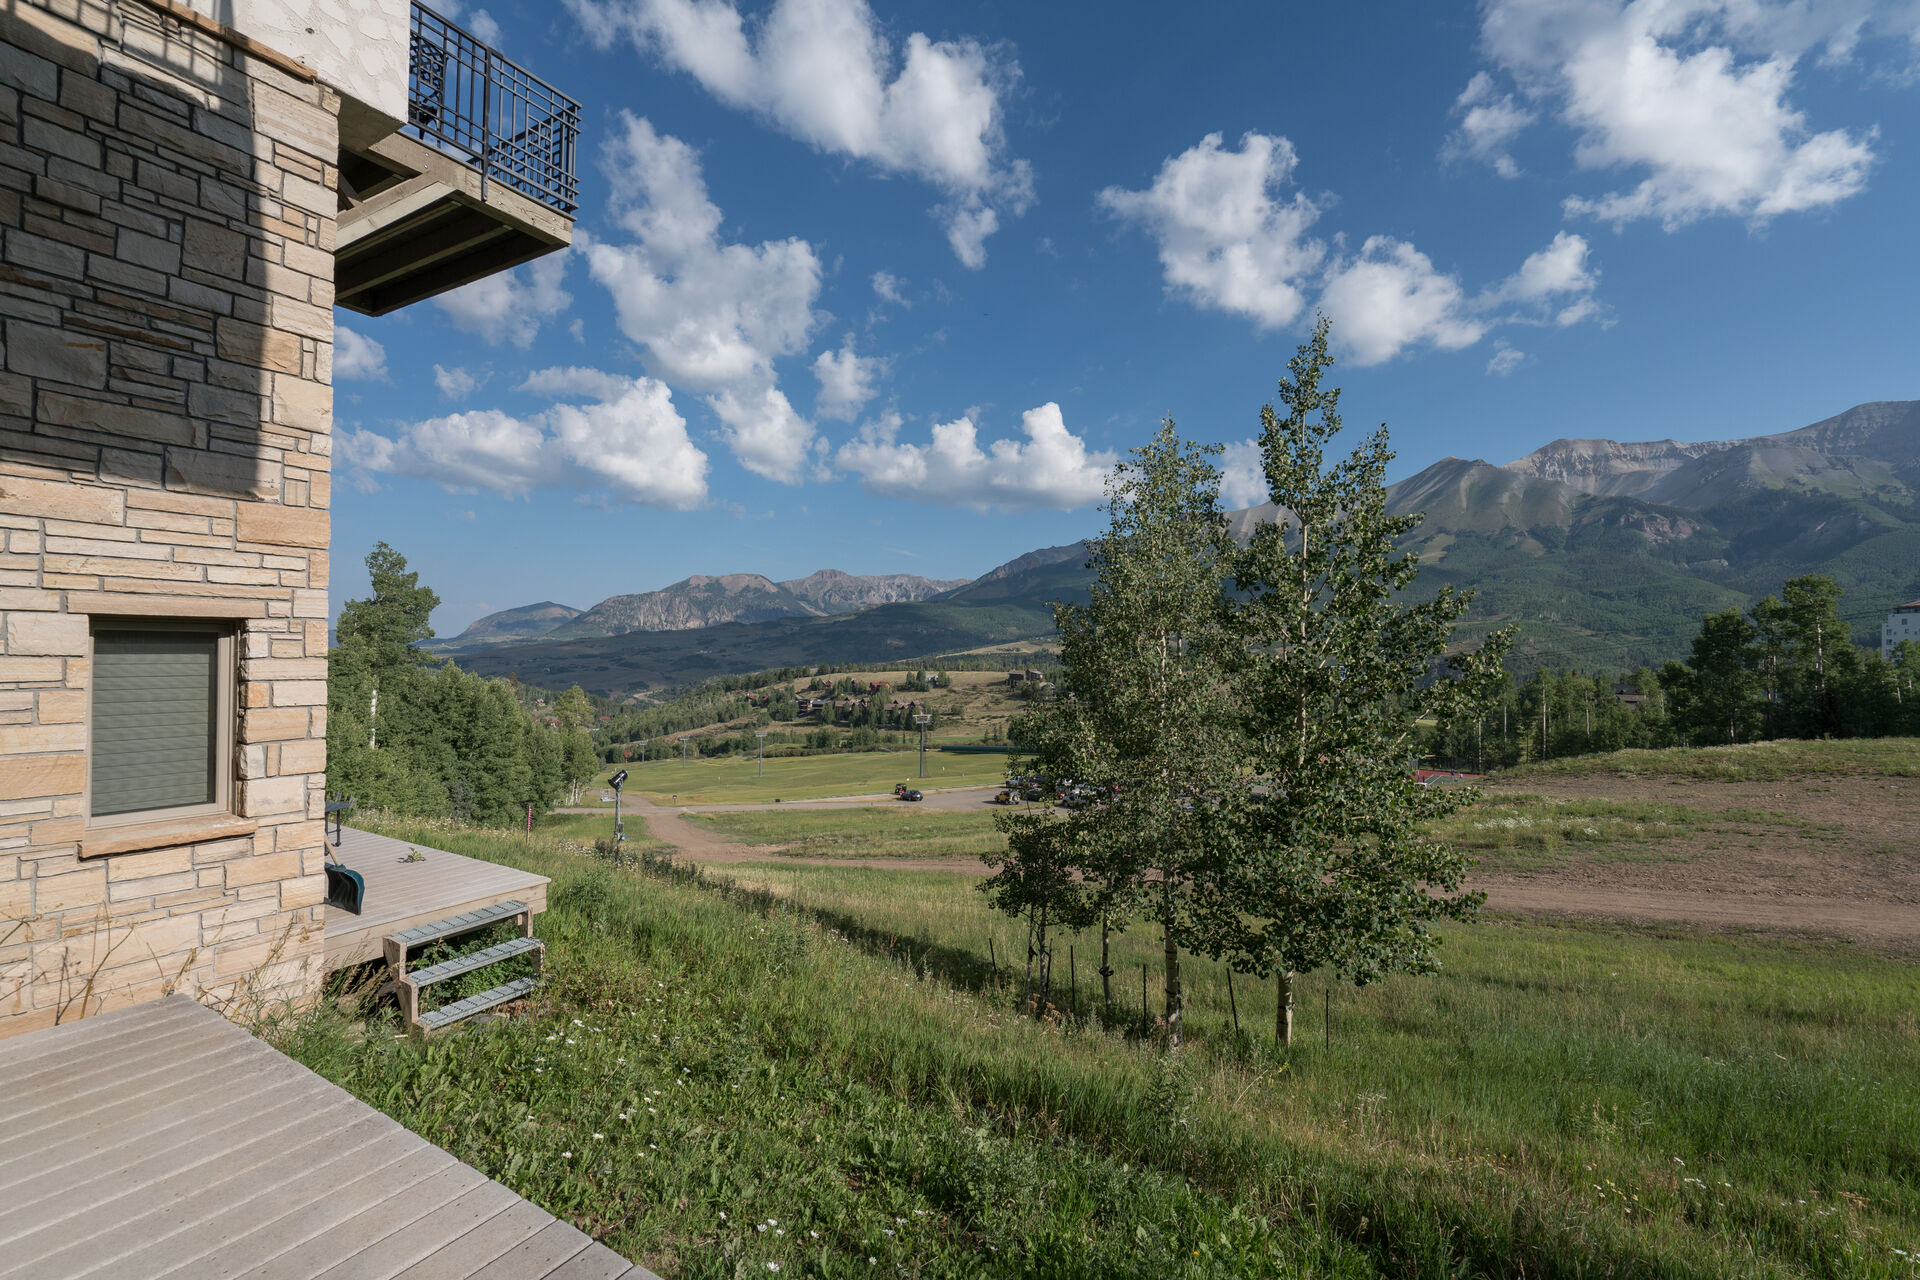 View of the wilderness from this mountain village condo.